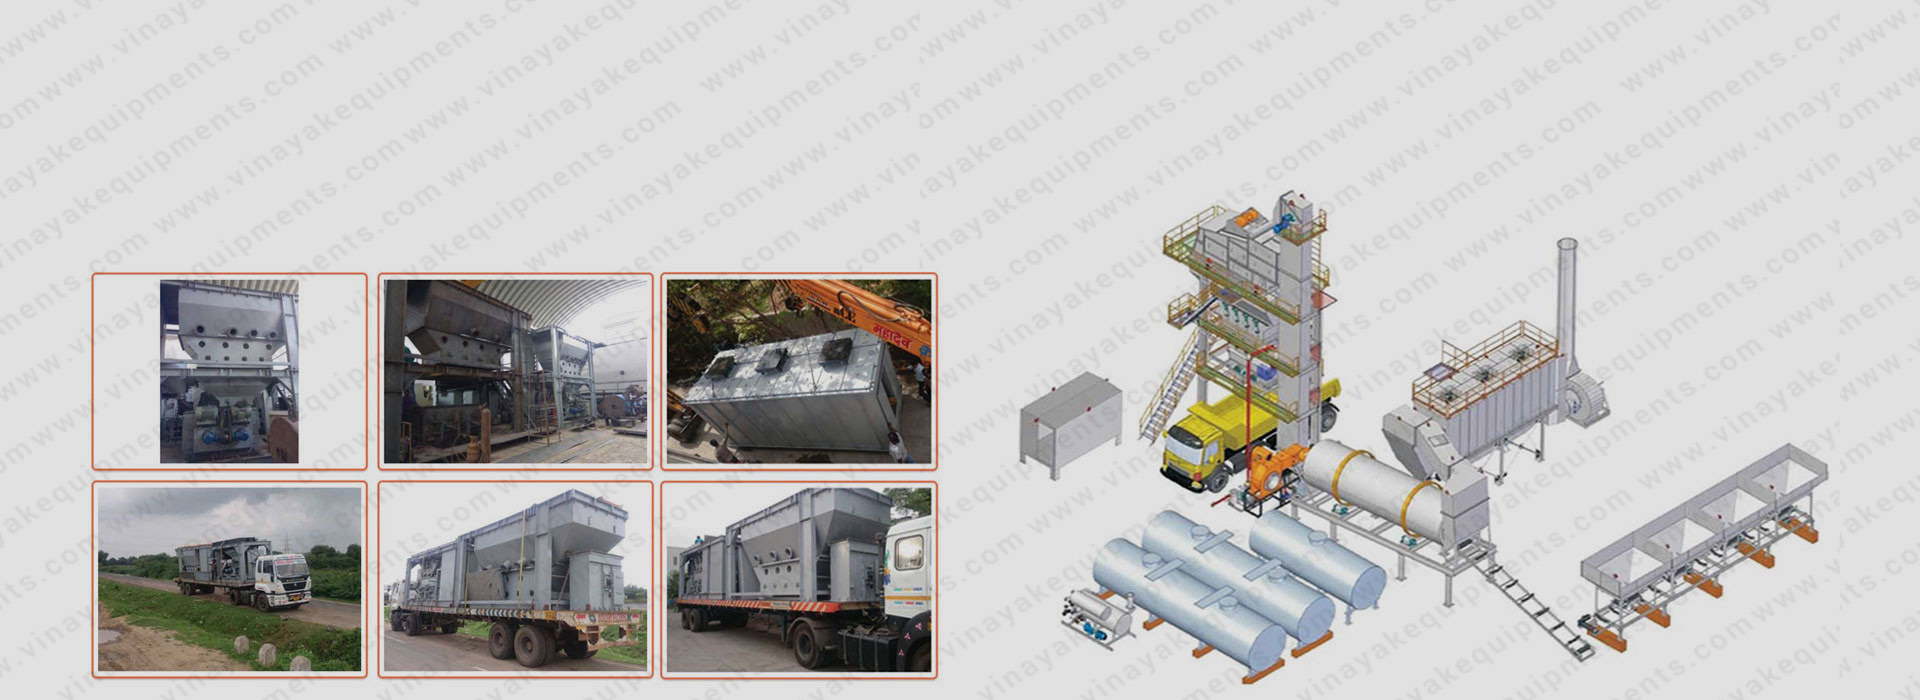 Asphalt Mixing Plant Manufacturer, Suppliers, Dealers